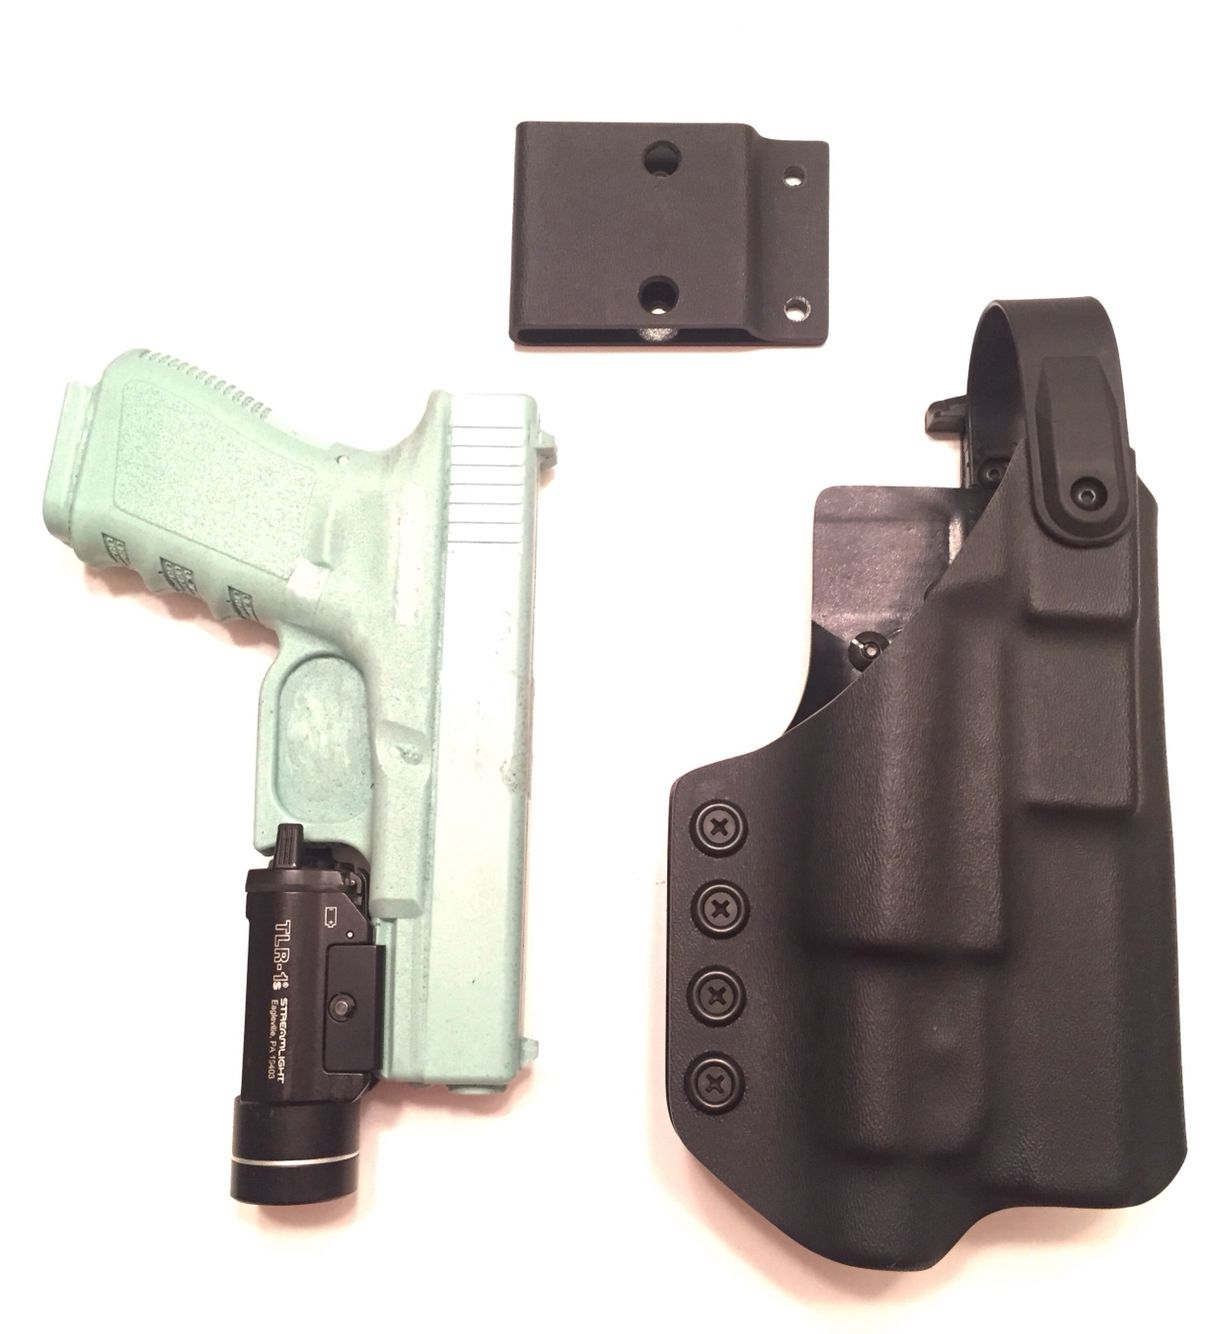 Level 2 retention holster for Glock 19/17/22 with